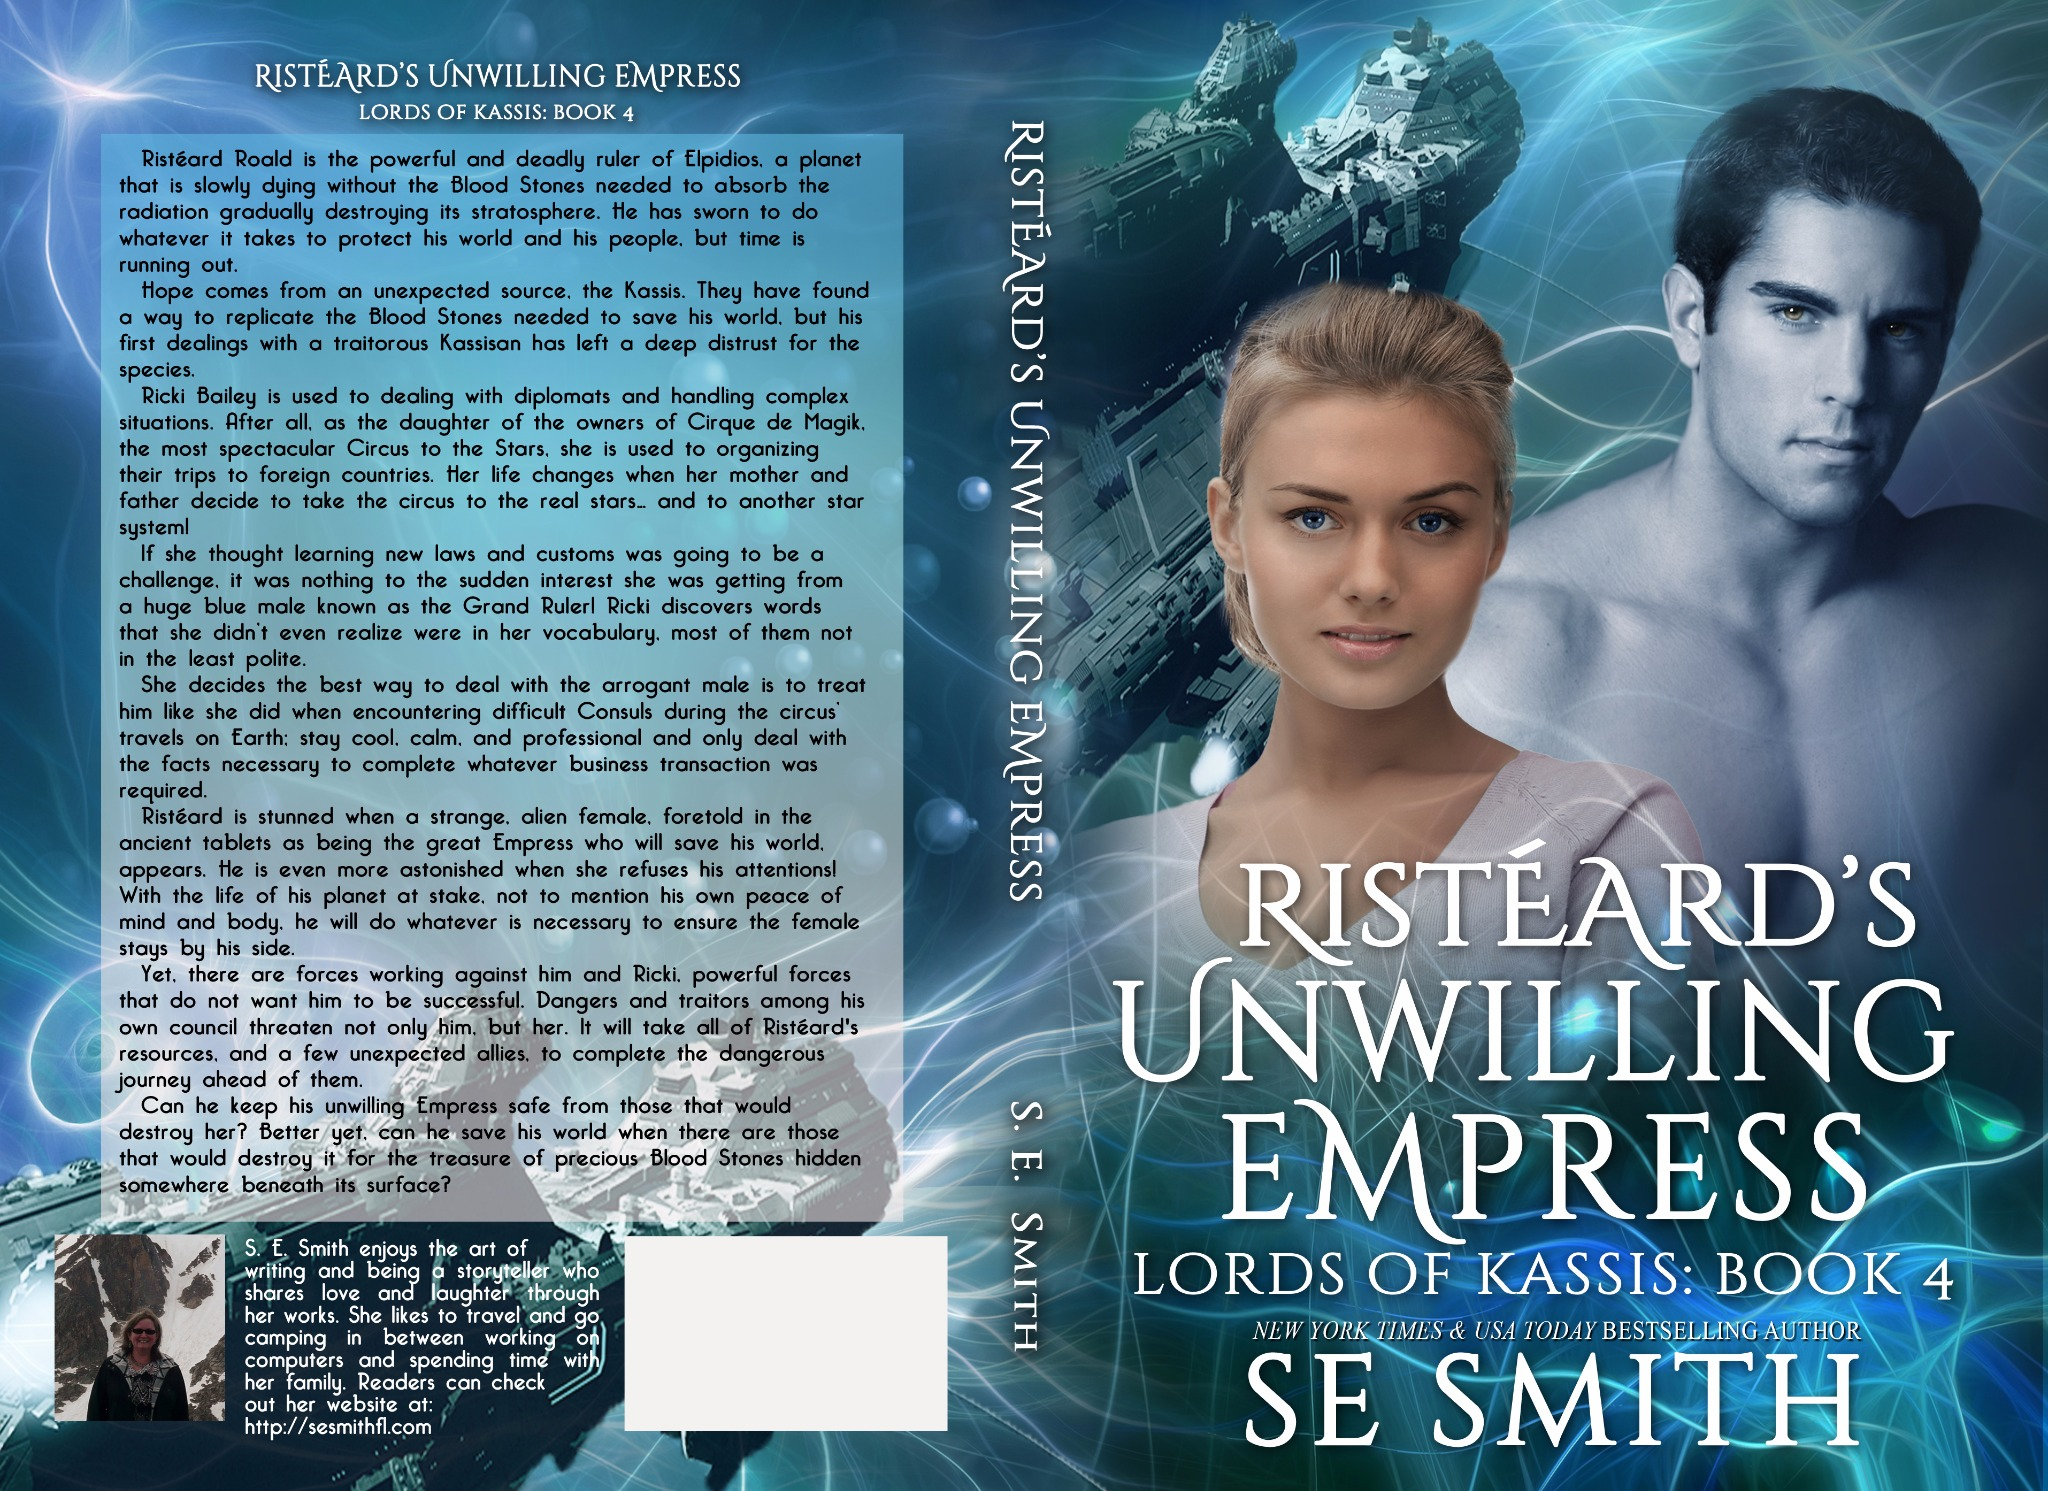 Risteard's Unwilling Empress: Lords of Kassis Book 4 (Paperback)